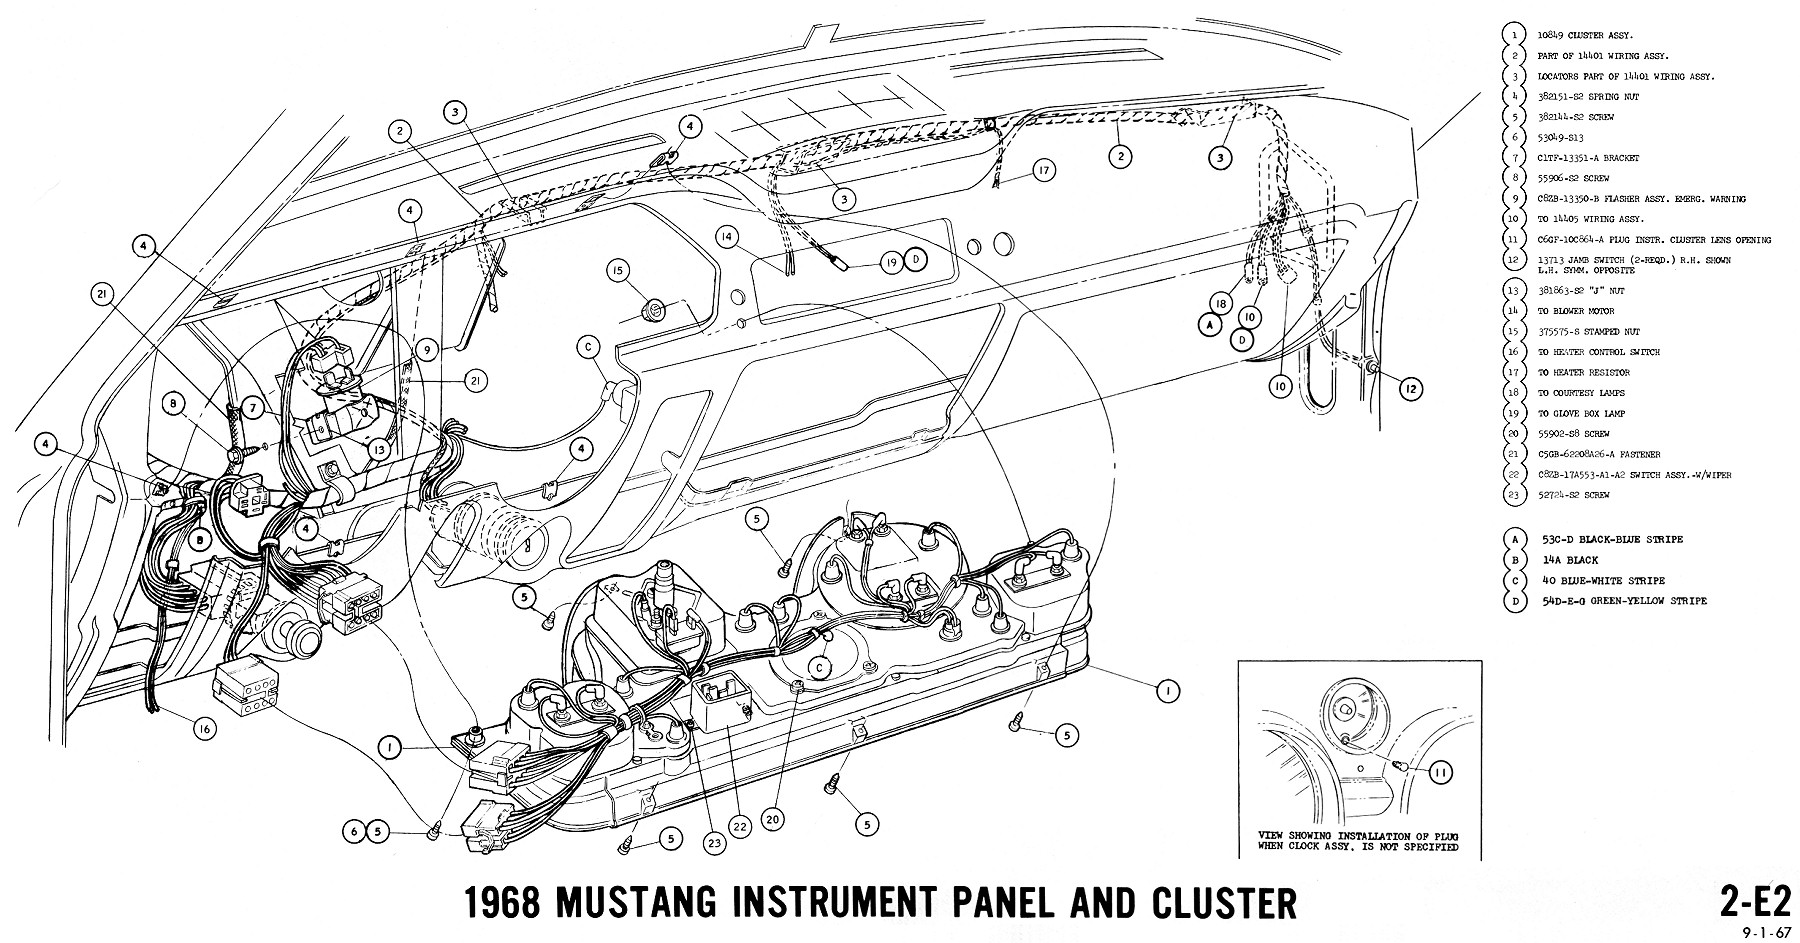 1968 mustang wiring diagram instruments 2 1968 mustang wiring diagrams and vacuum schematics average joe 1970 mustang wiring diagram at alyssarenee.co